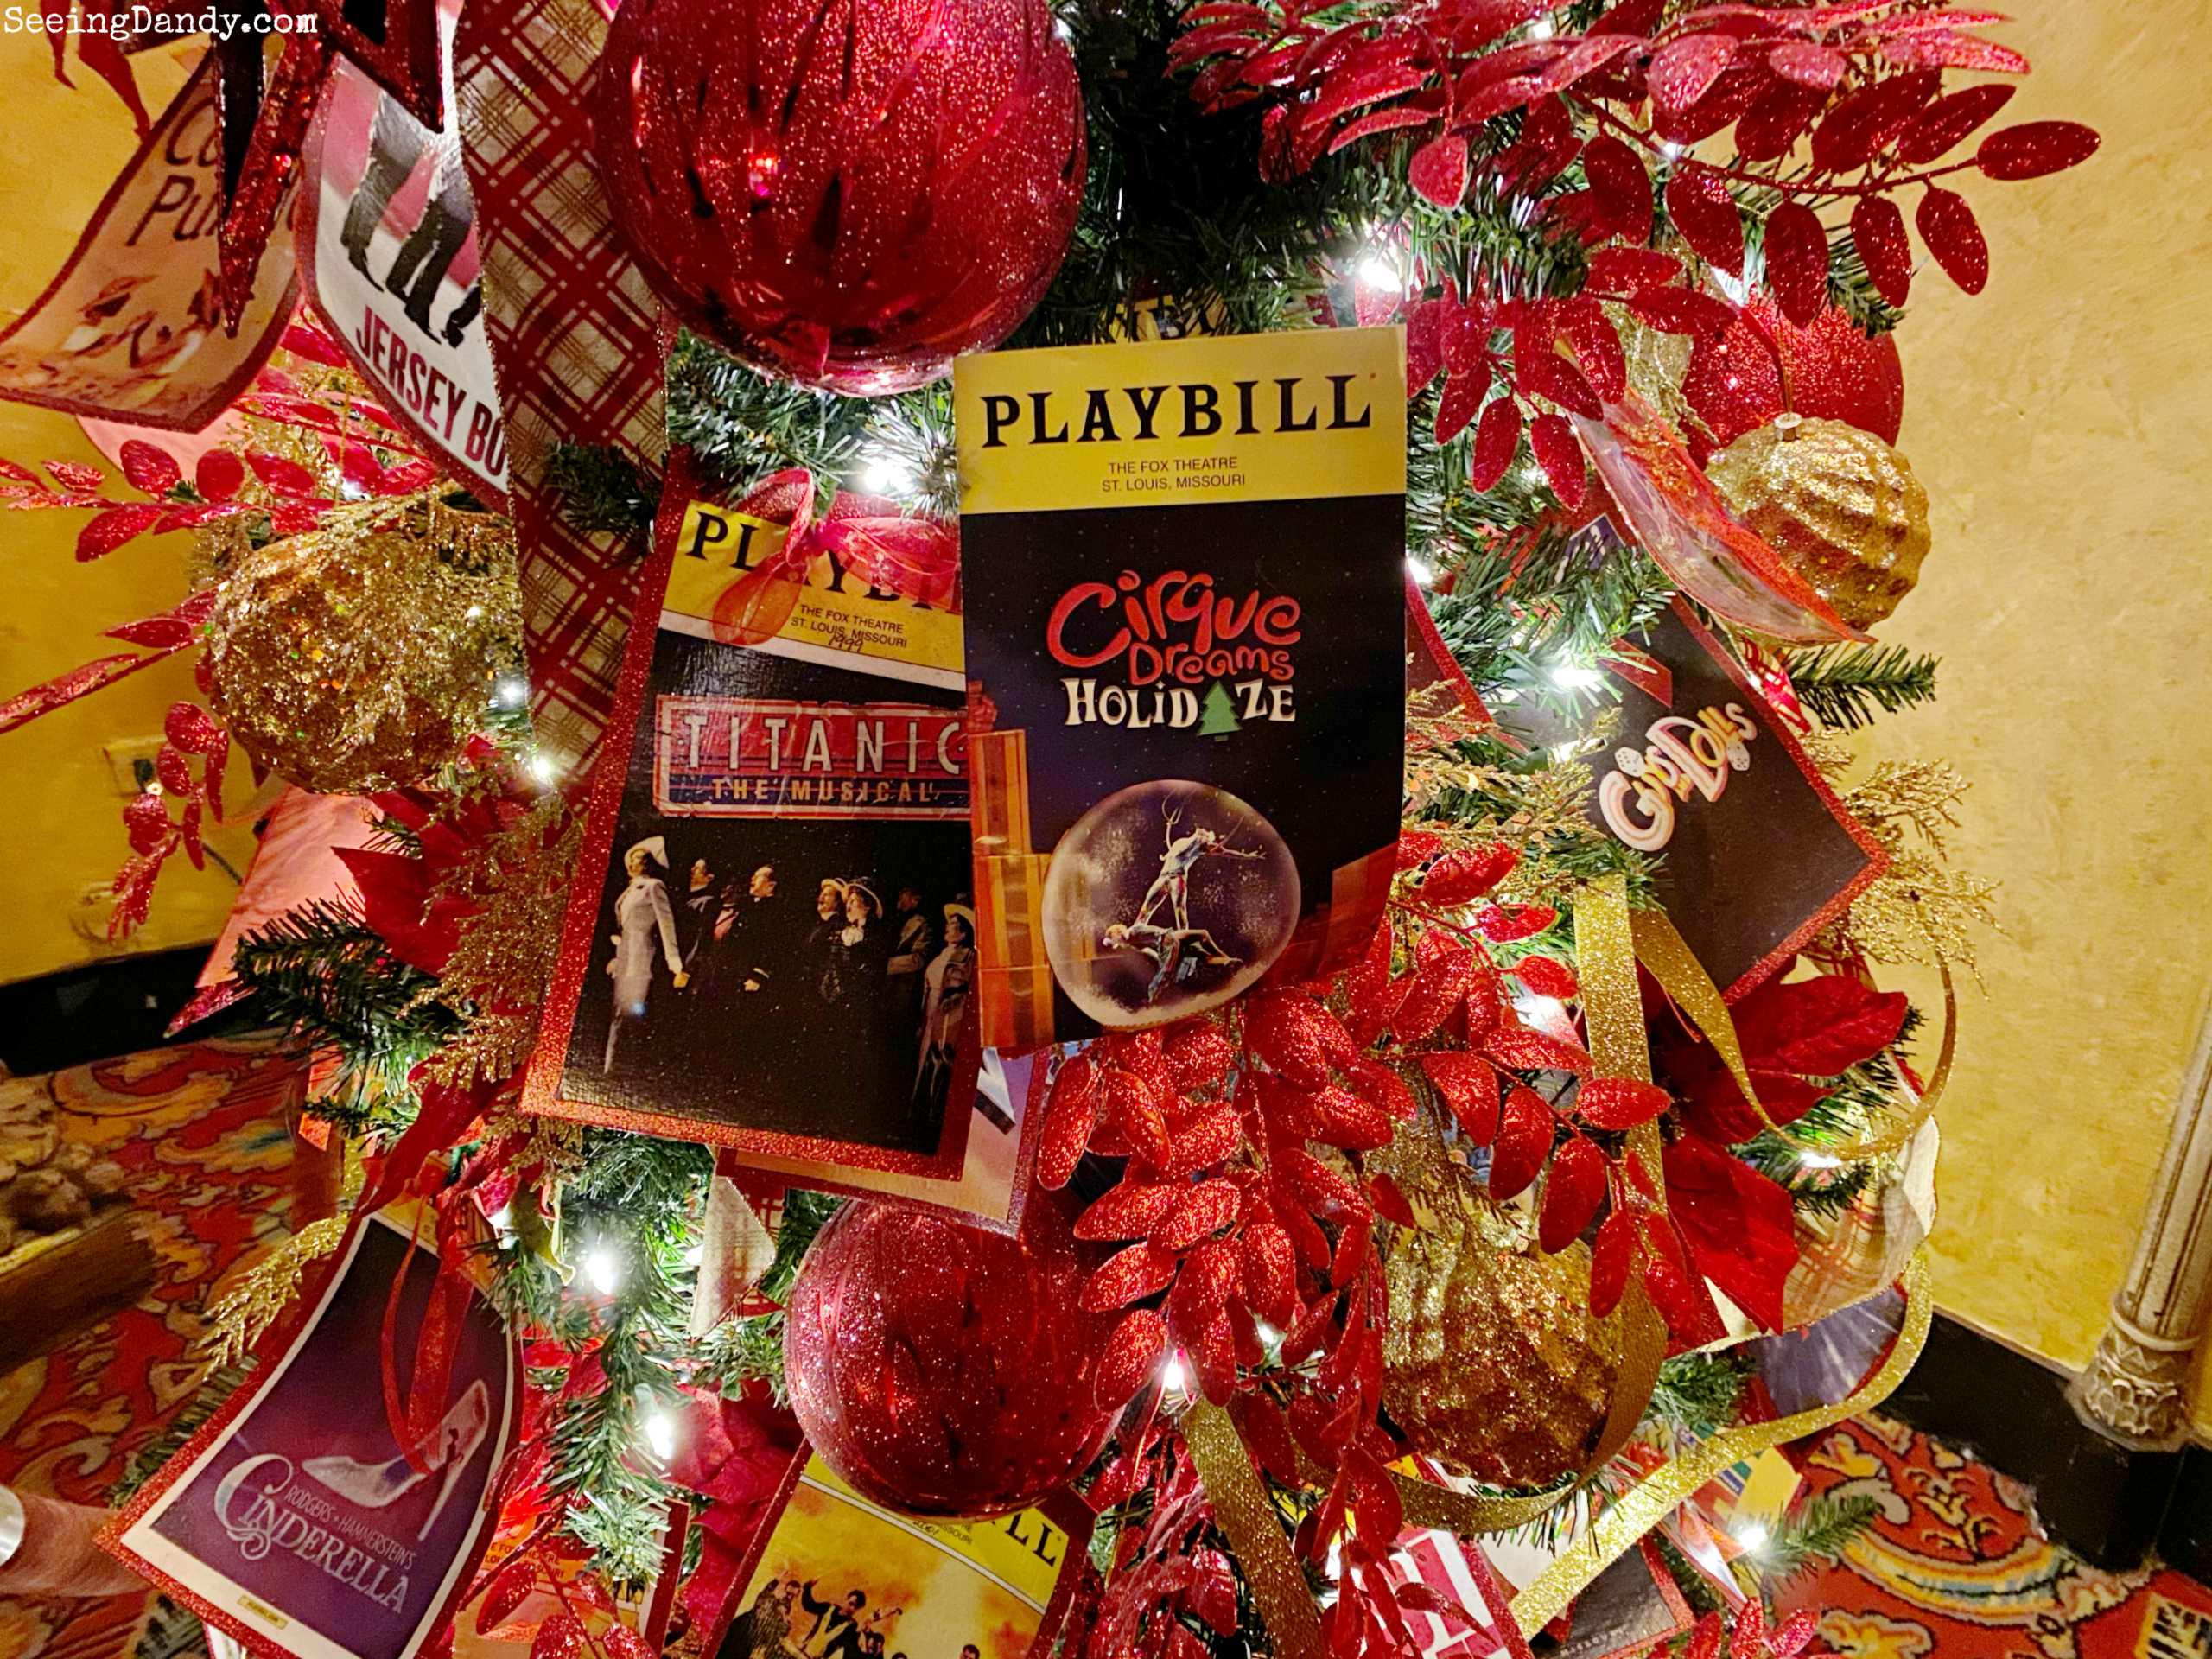 Cirque Dreams Holidaze St Louis Fox Theatre Playbill tree.